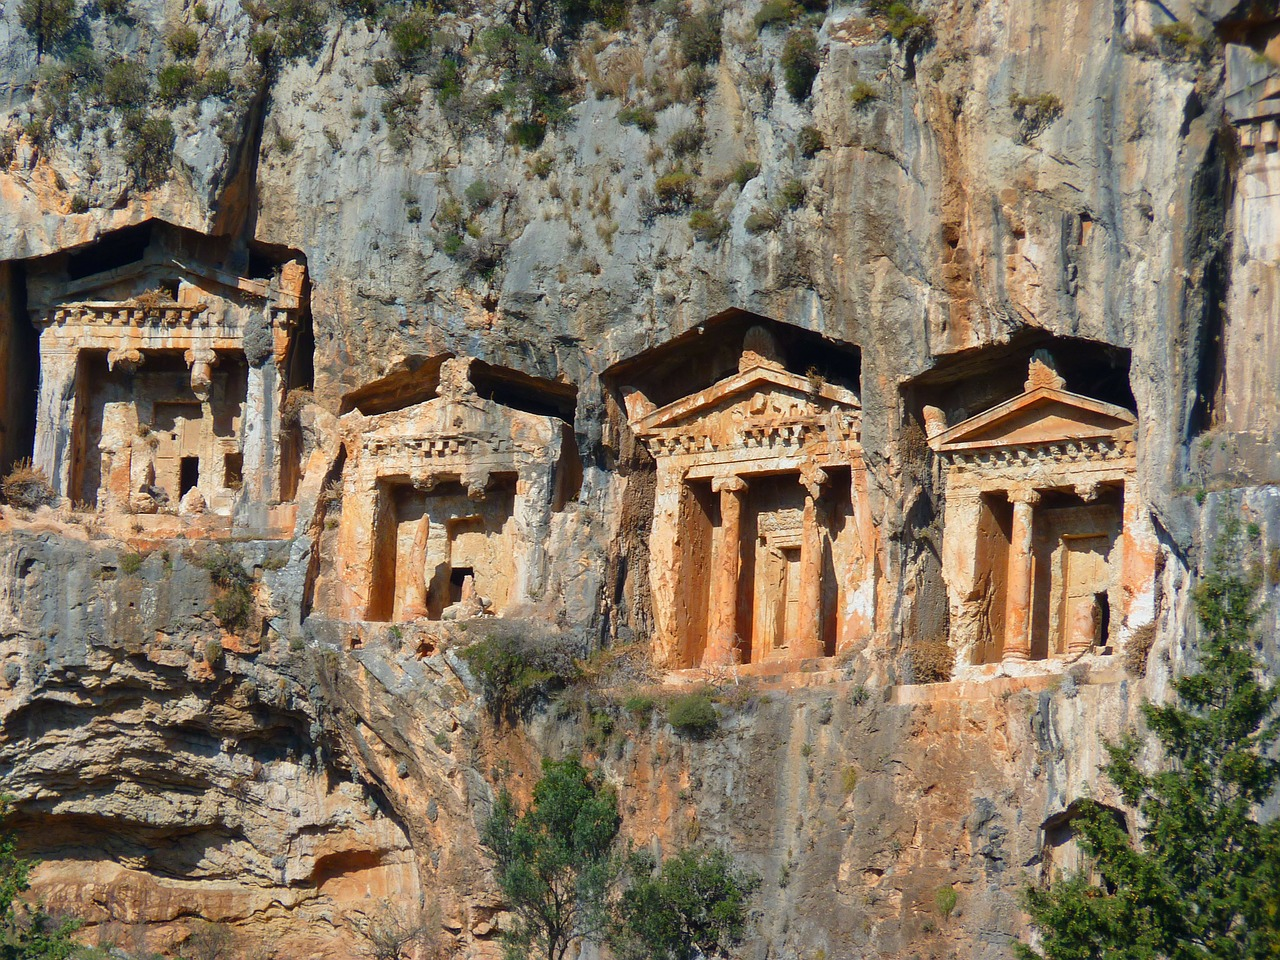 rock tombs,temple,columnar,caves buildings,rock,historically,carian rock tombs,dalyan,turkey,cultural sites,antiquity,kaunos,ruins,free pictures, free photos, free images, royalty free, free illustrations, public domain